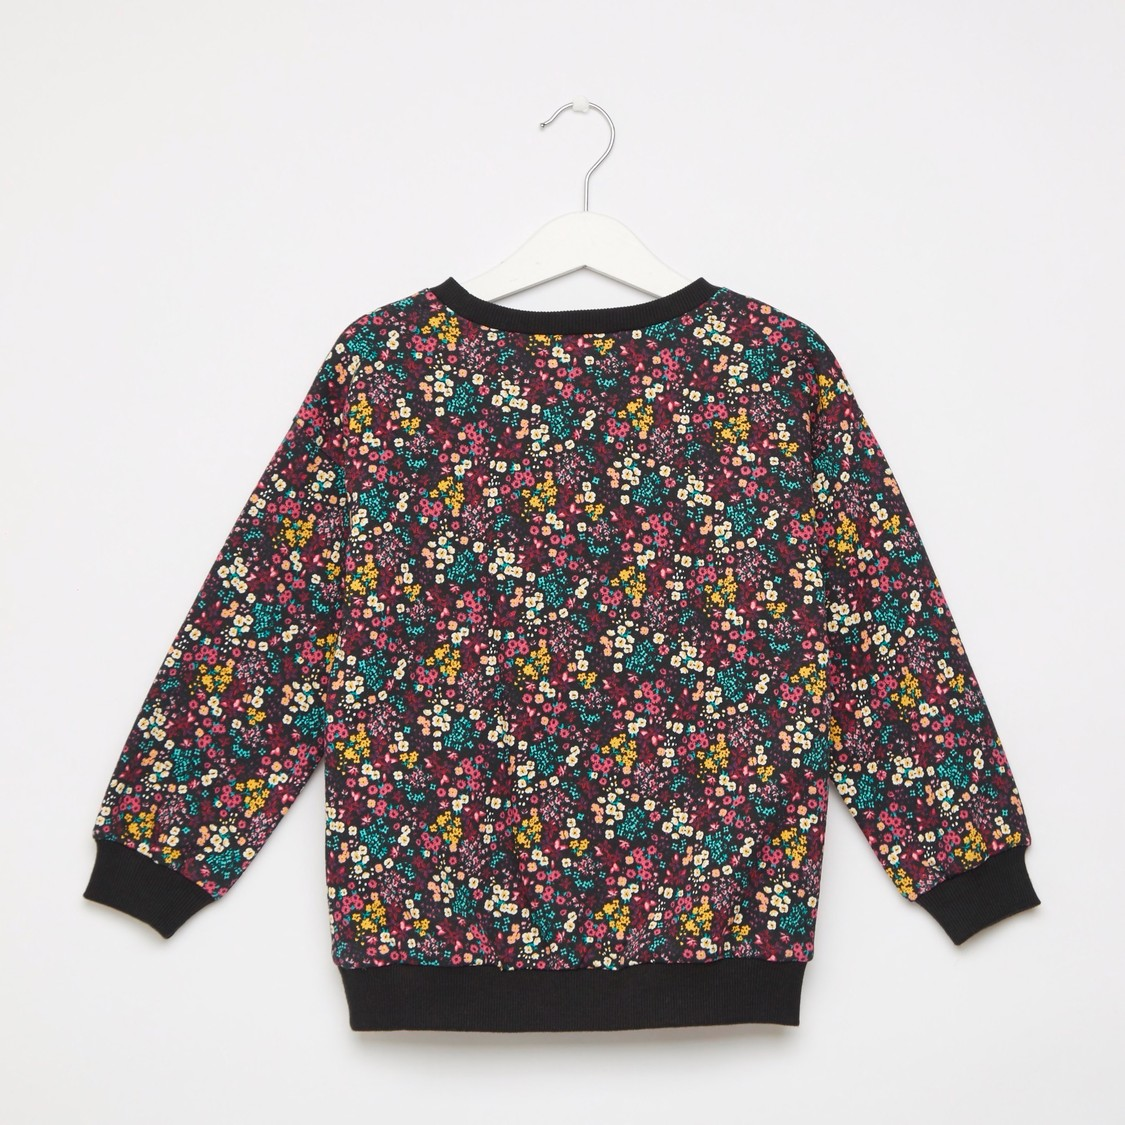 Floral Print Round Neck Sweat Top with Textured Slogan